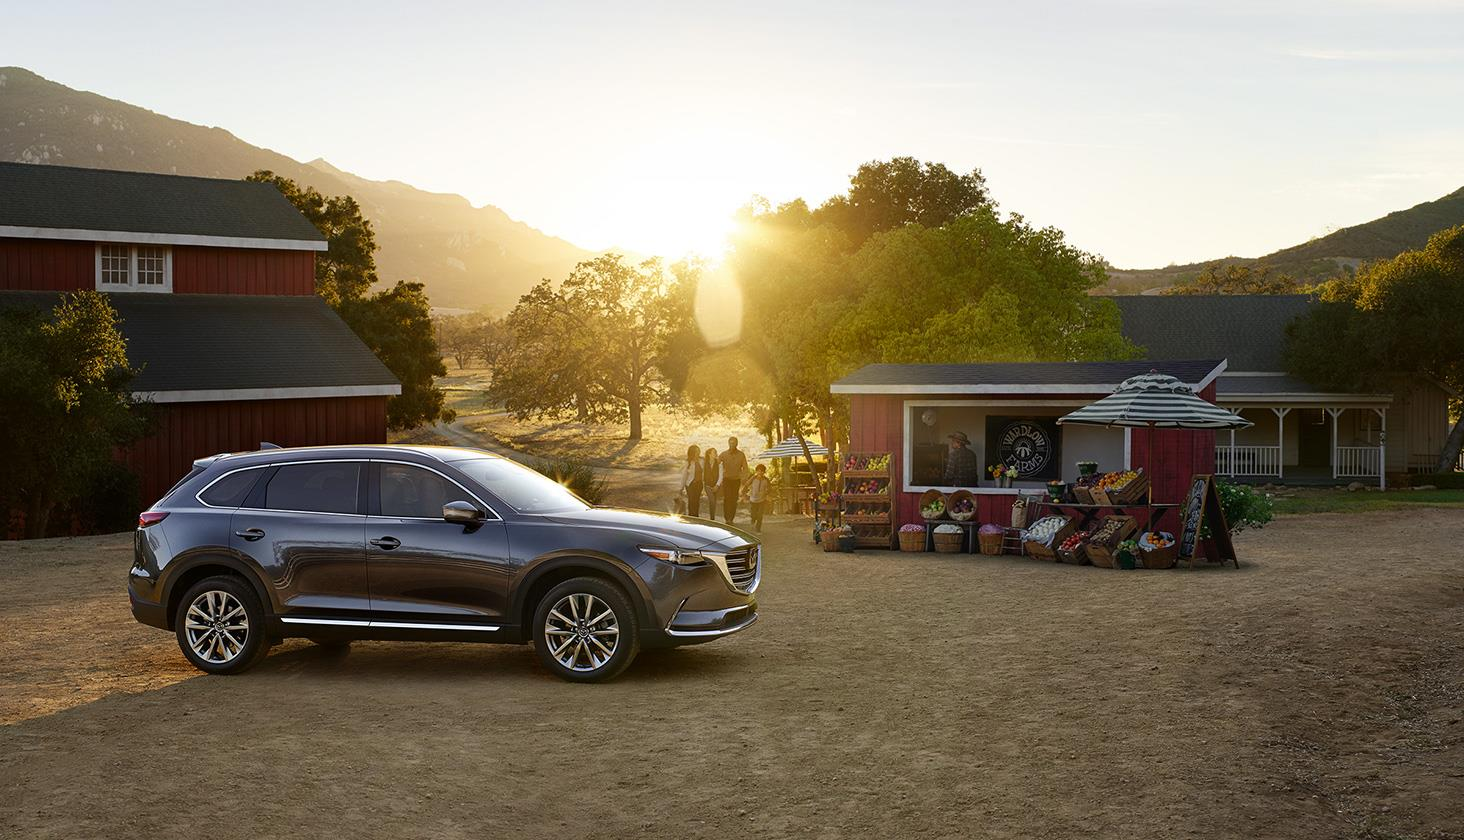 hight resolution of why not test drive the mazda cx 9 stop by cardinaleway mazdacorona and we ll be glad to assist you ask our sales team to demonstrate the i activsense